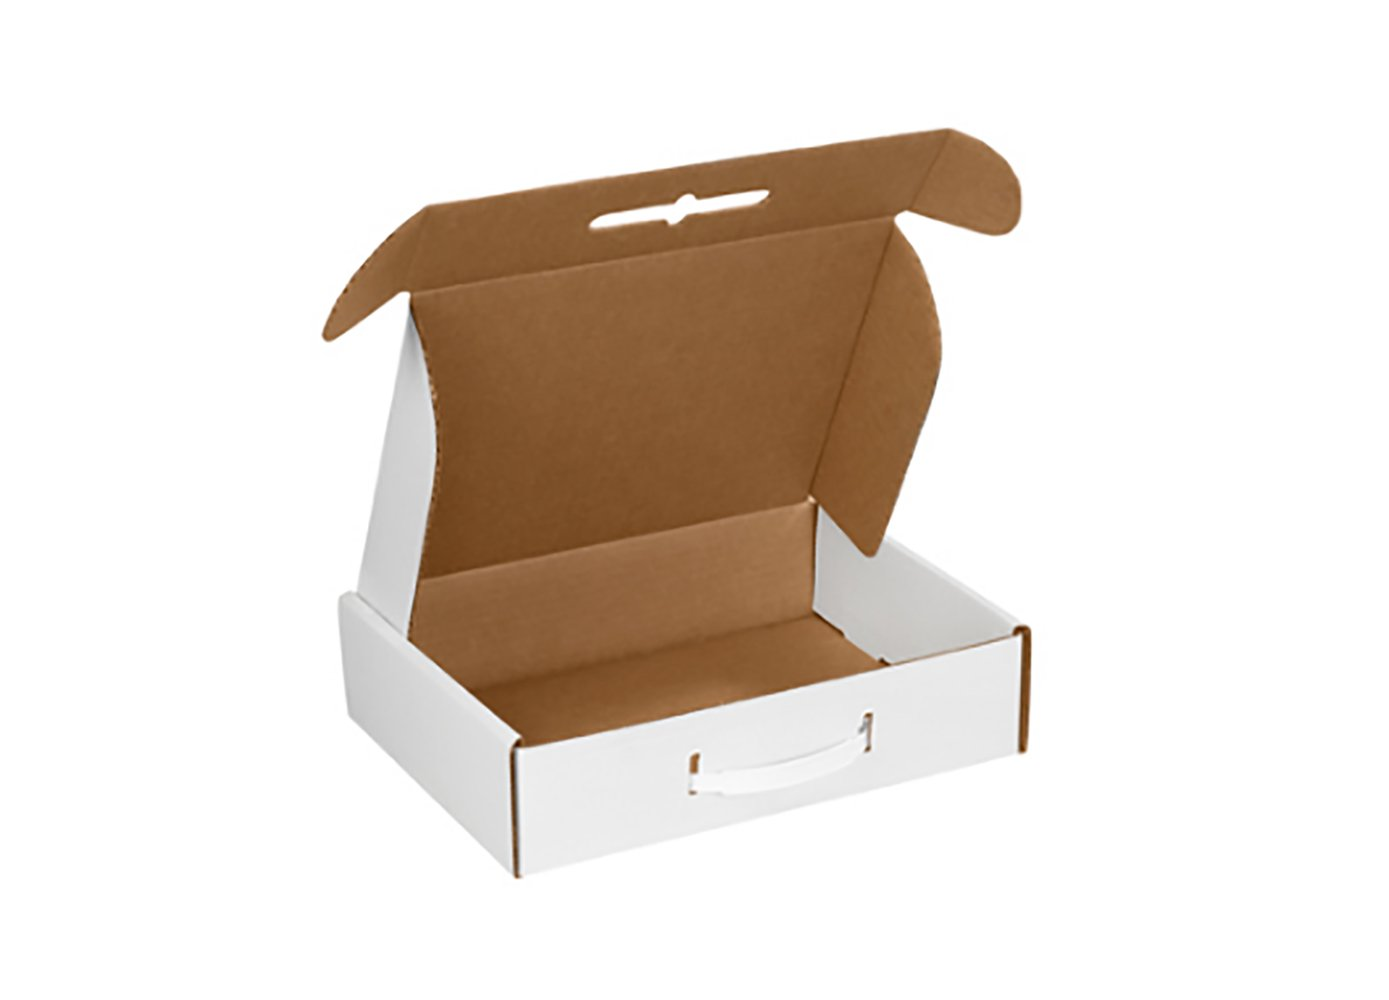 RetailSource MCC1x10 12 1//8 x 9 1//4 x 3 White Corrugated Carrying Cases 28.25 Length Pack of 10 4 Height 26.5 Width